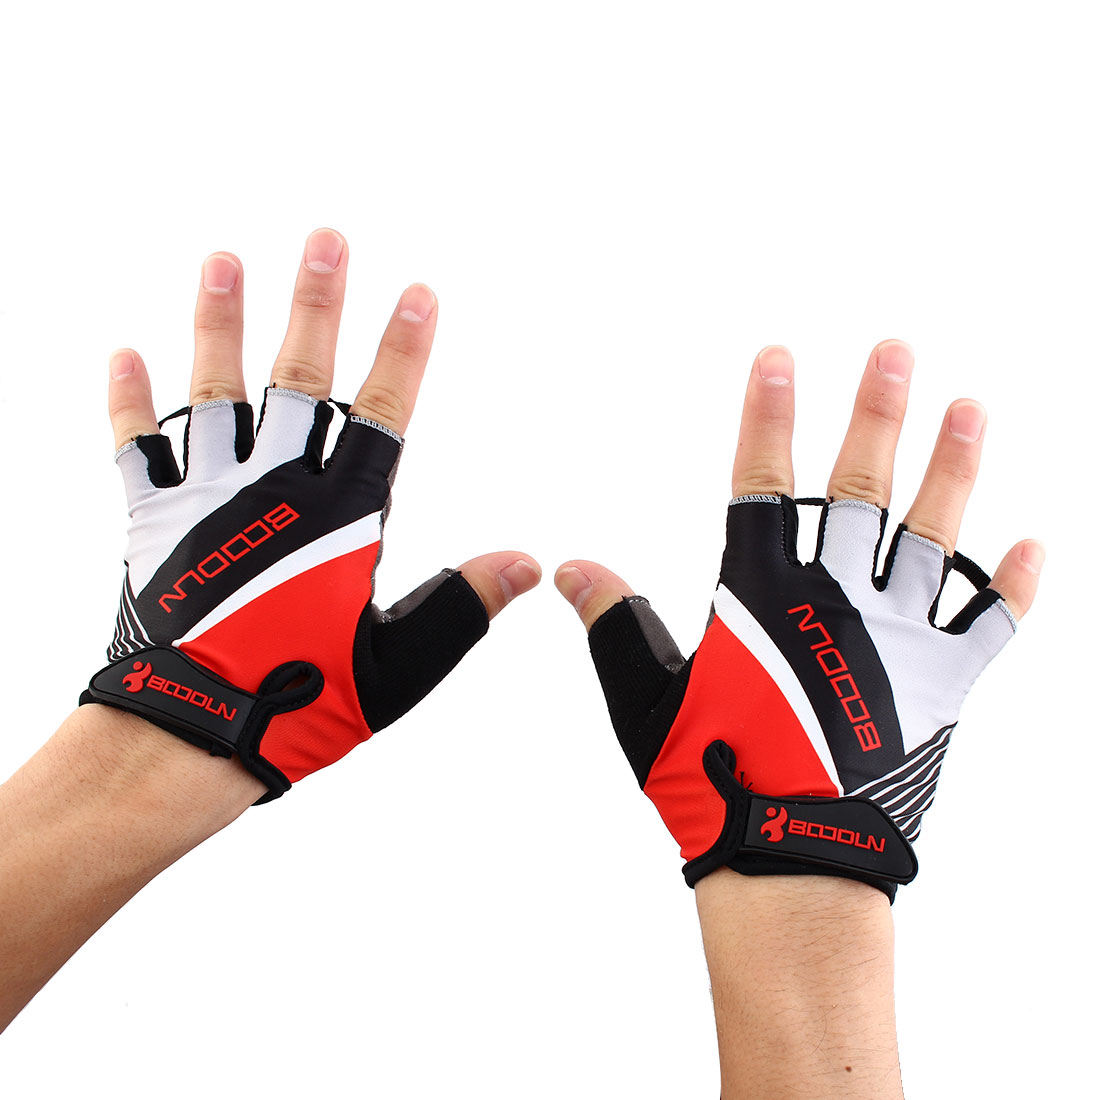 BOODUN Authorized Unisex Exercise Sports Cycling Fitness Half Finger Palm Support Gloves Red Size XL Pair